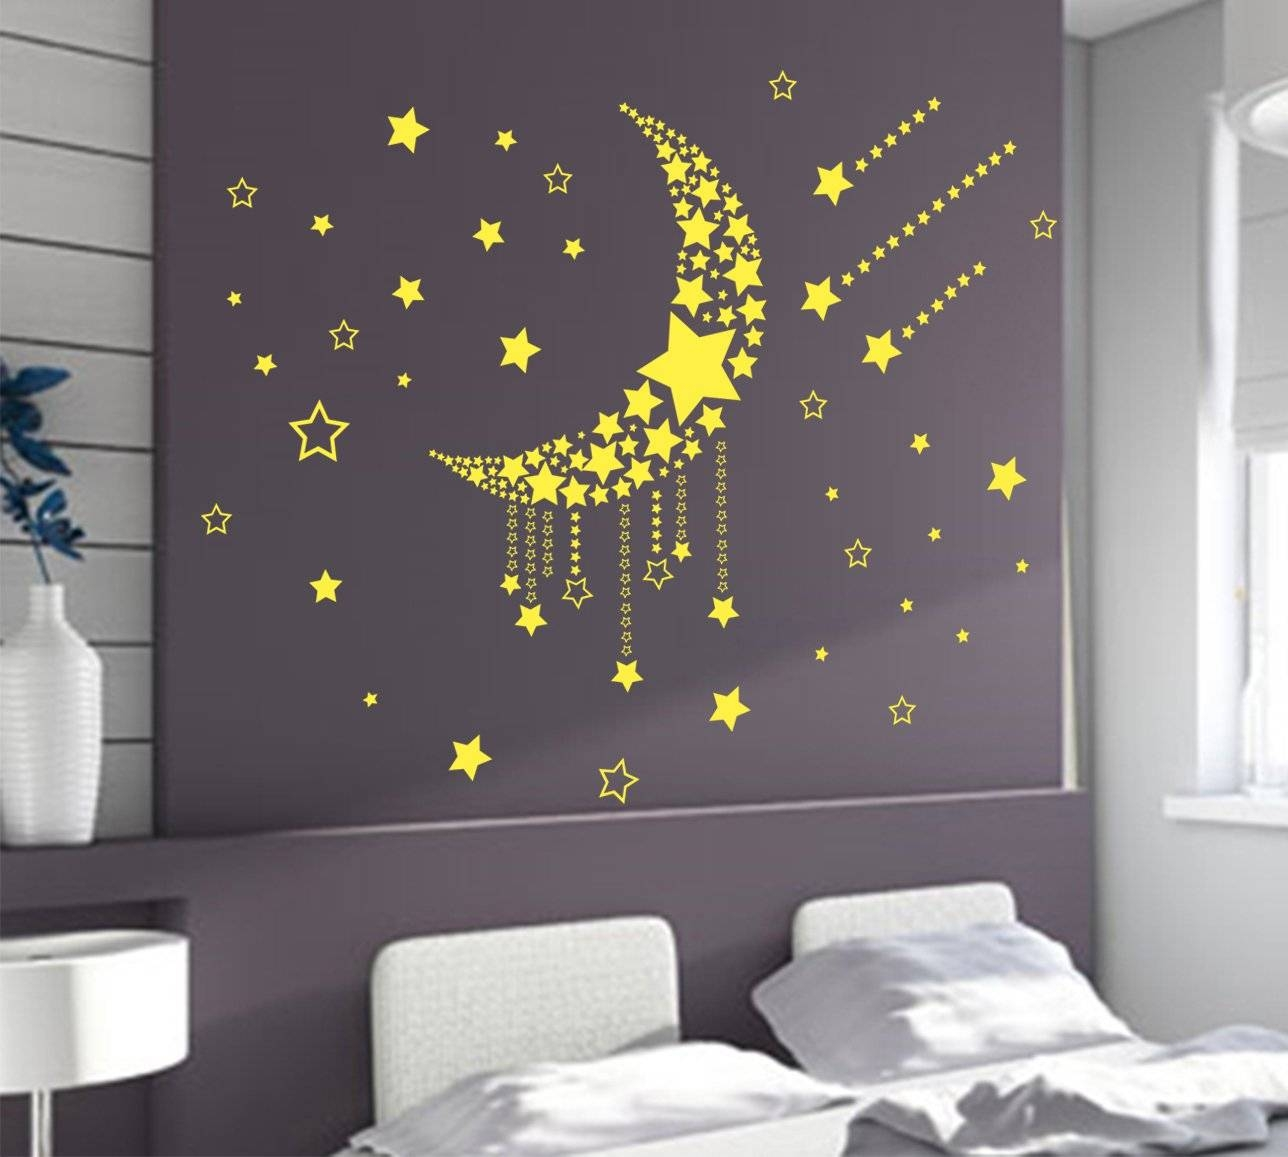 Bedroom : Bedroom Wall Art 94 Trendy Bed Ideas Mesmerizing Bedroom Within Most Popular Bedroom Wall Art (View 6 of 25)